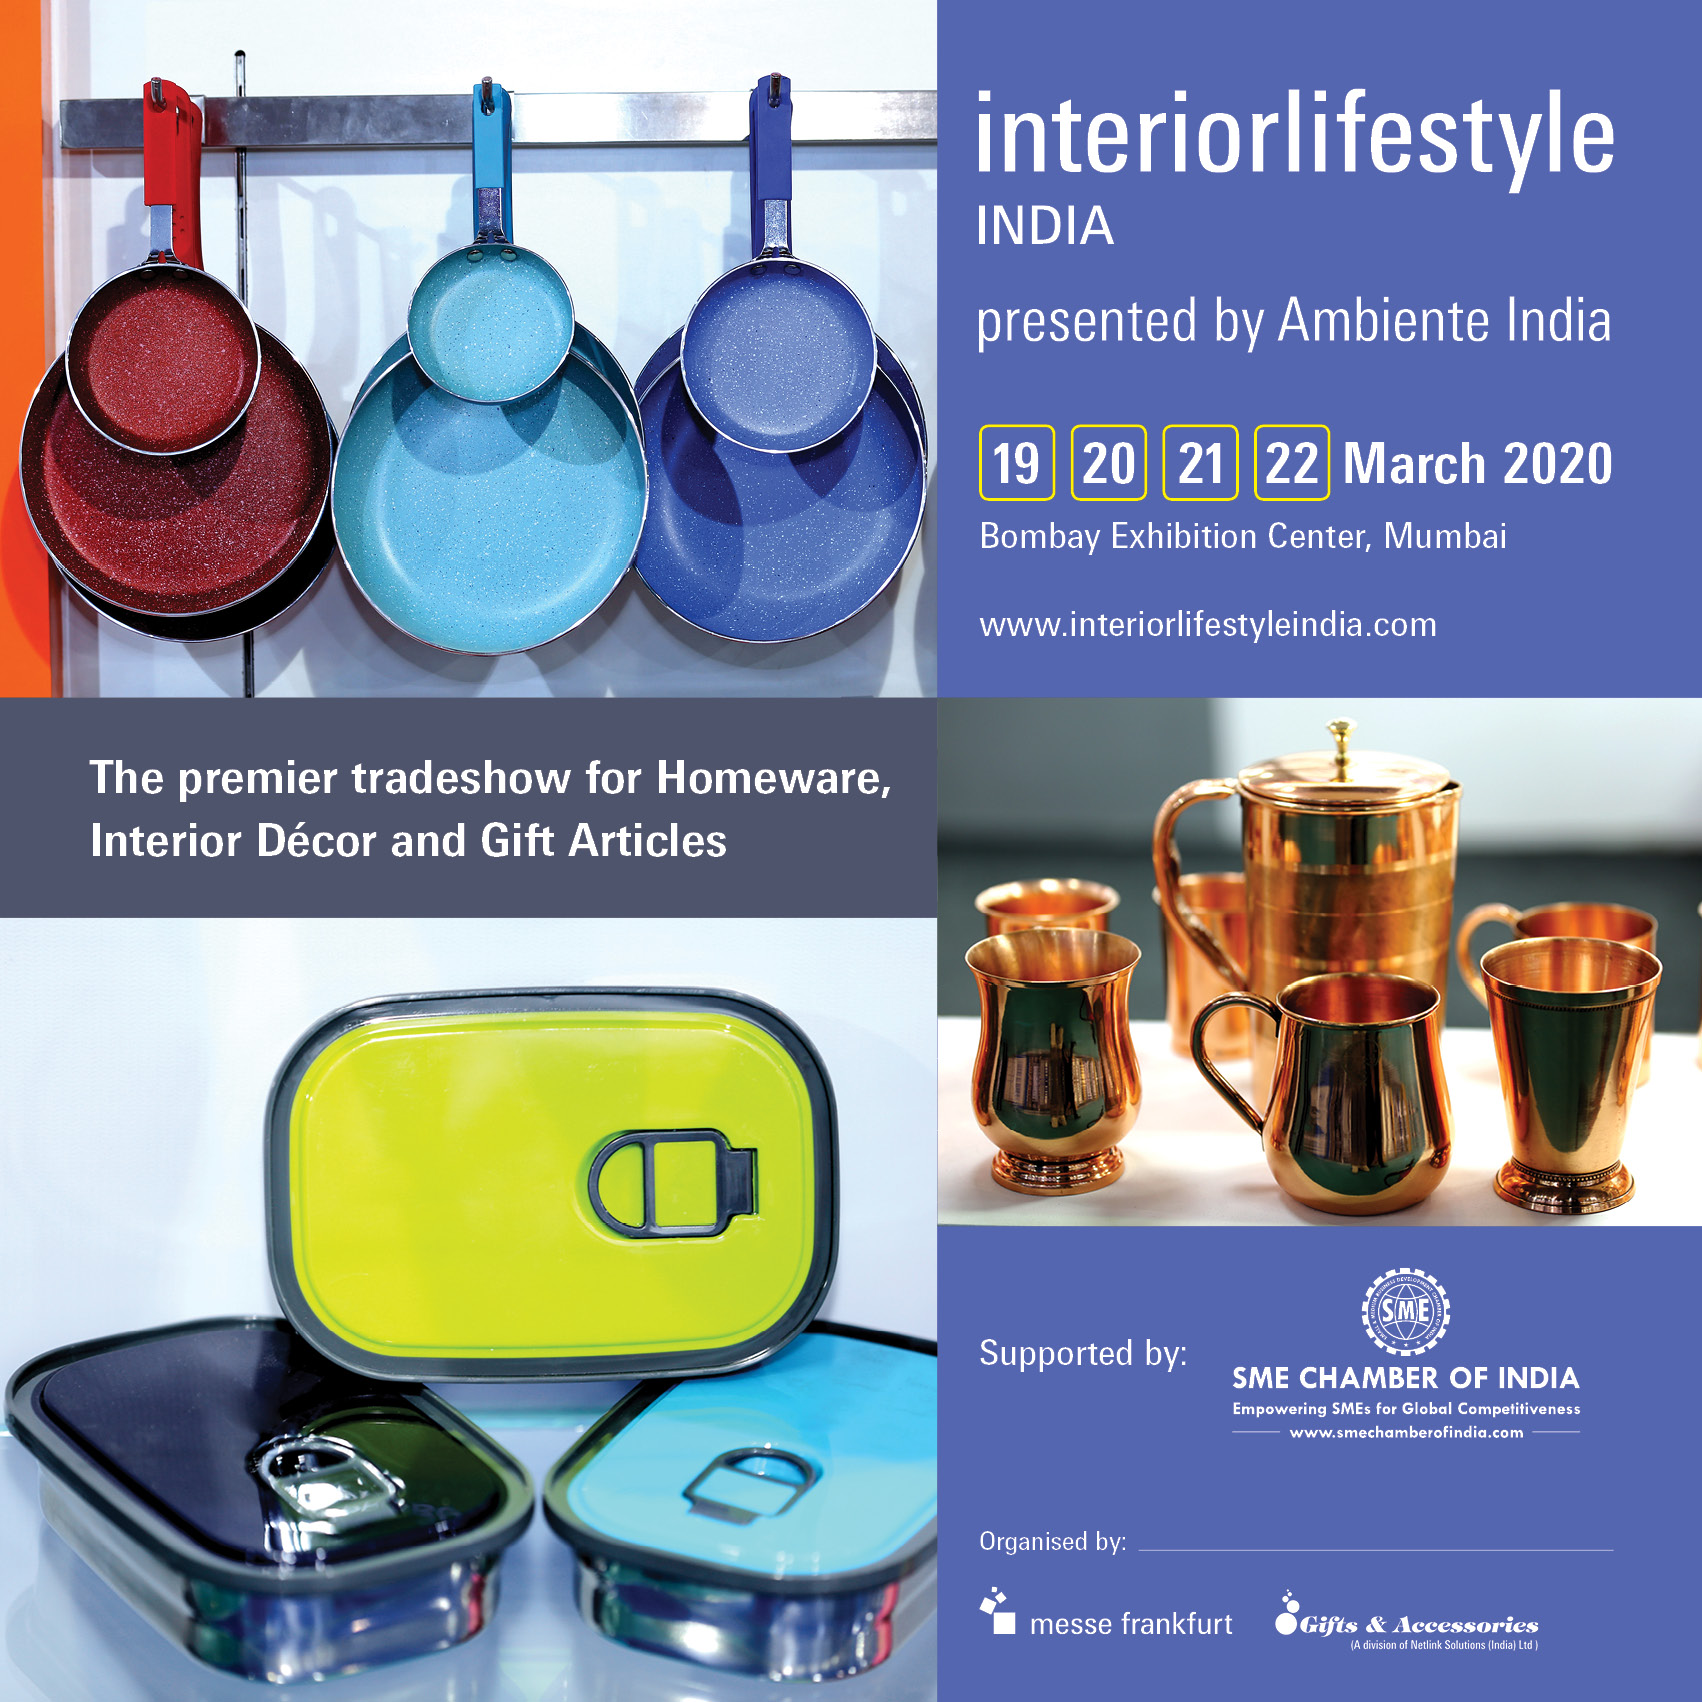 Interior Lifestyle India presented by Ambiente India 2020